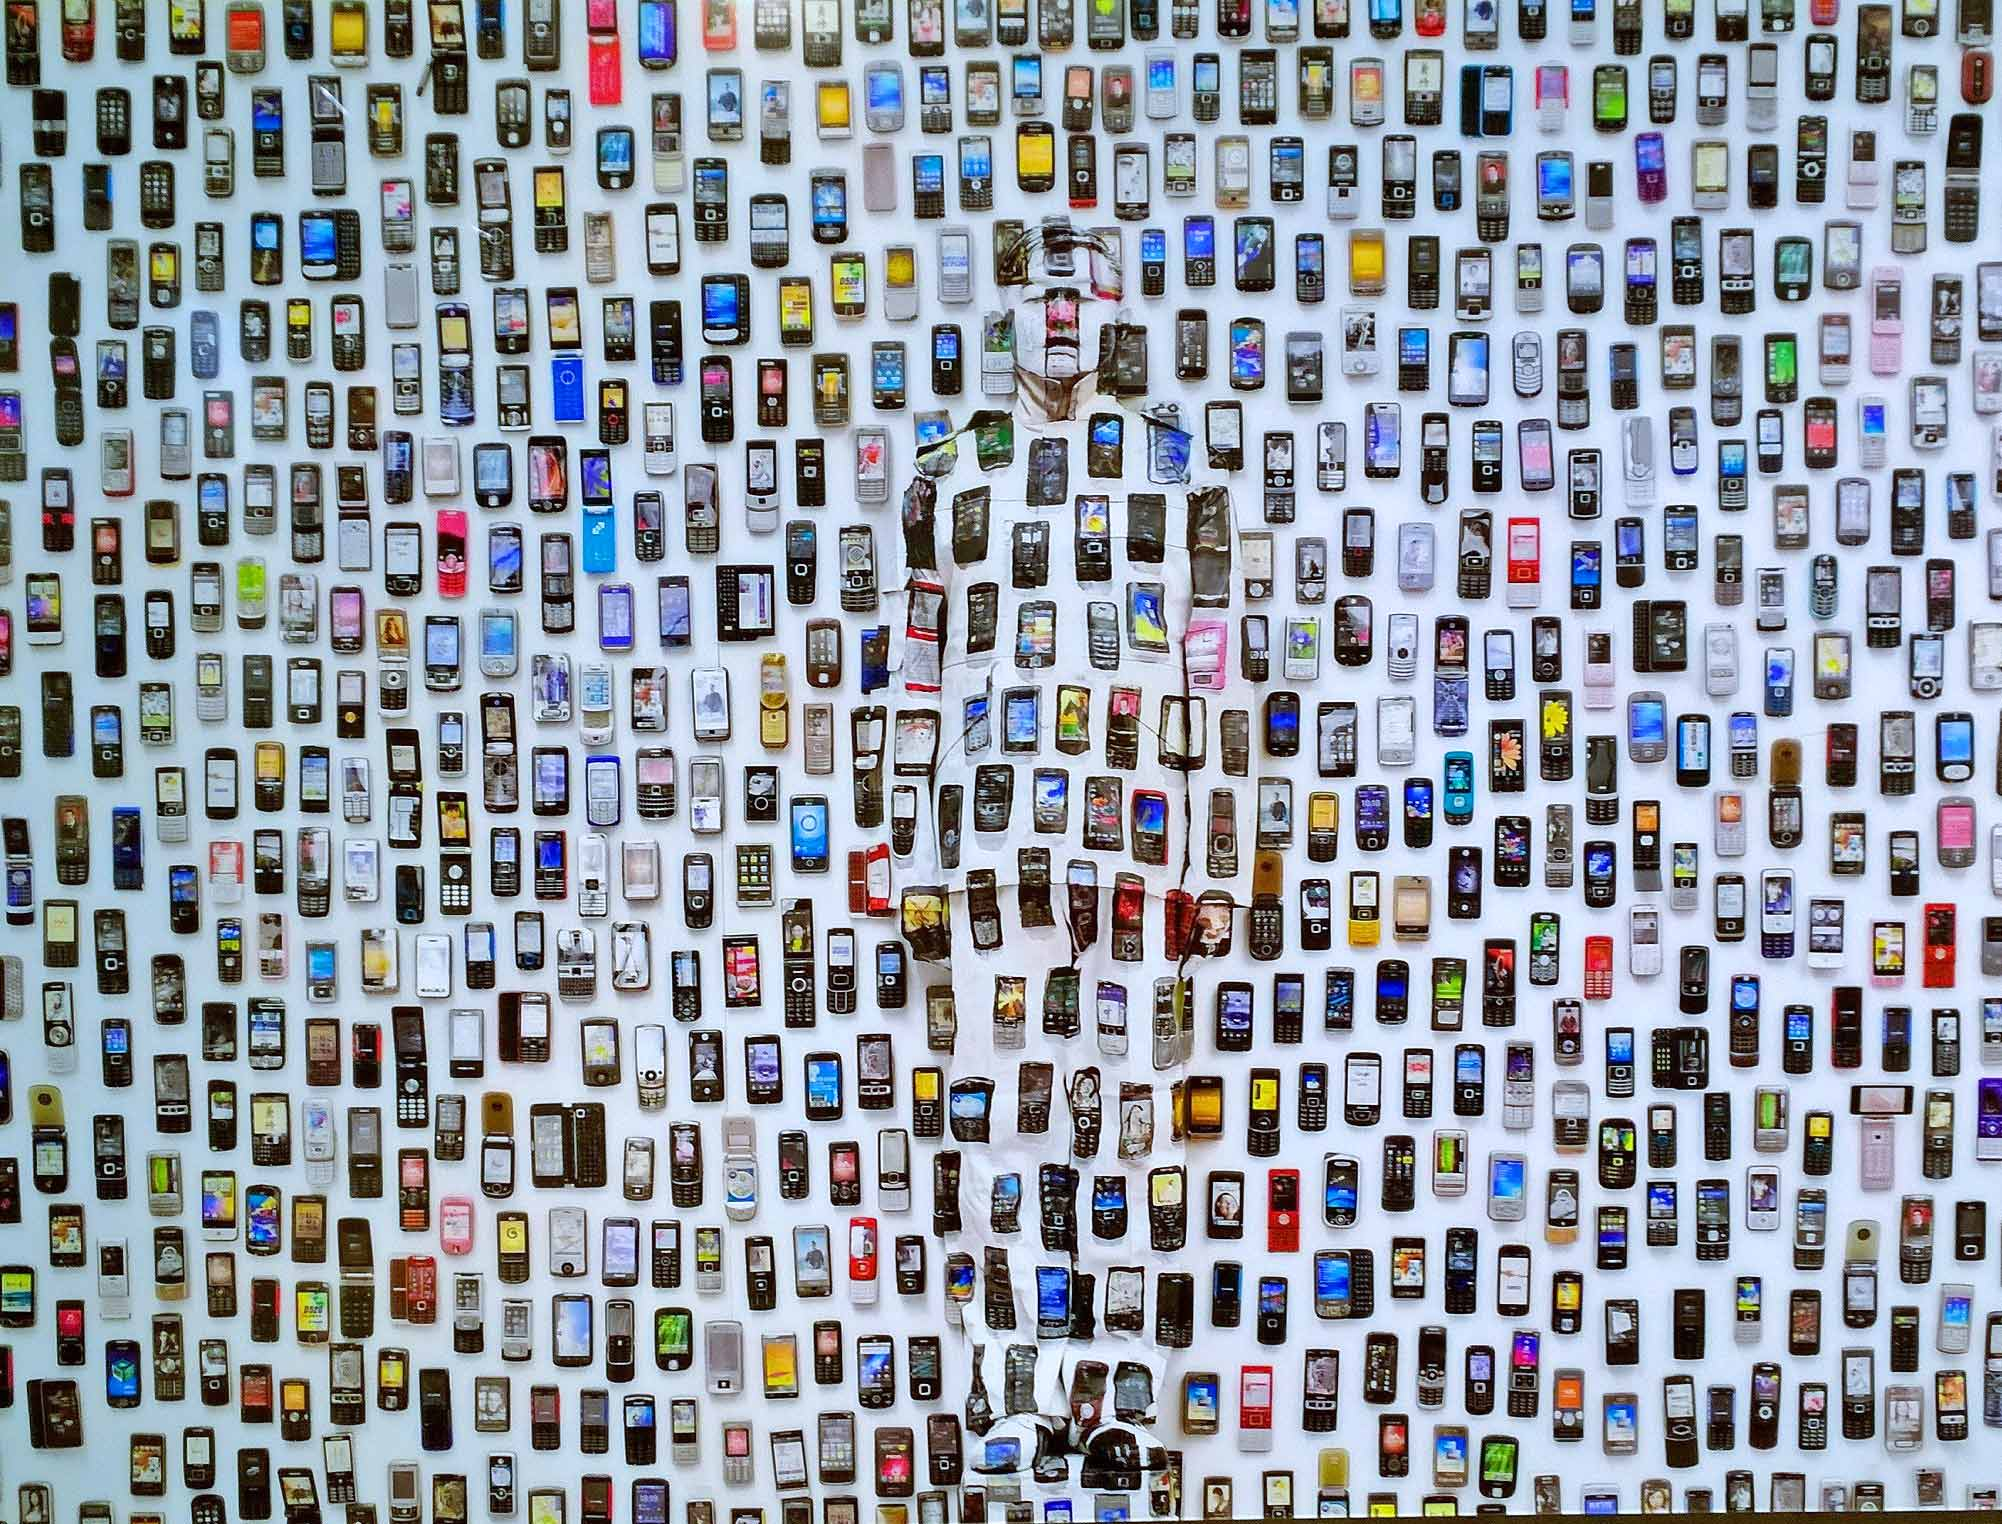 Liu Bolin - Focal Journey (by Gustavo Espinola)